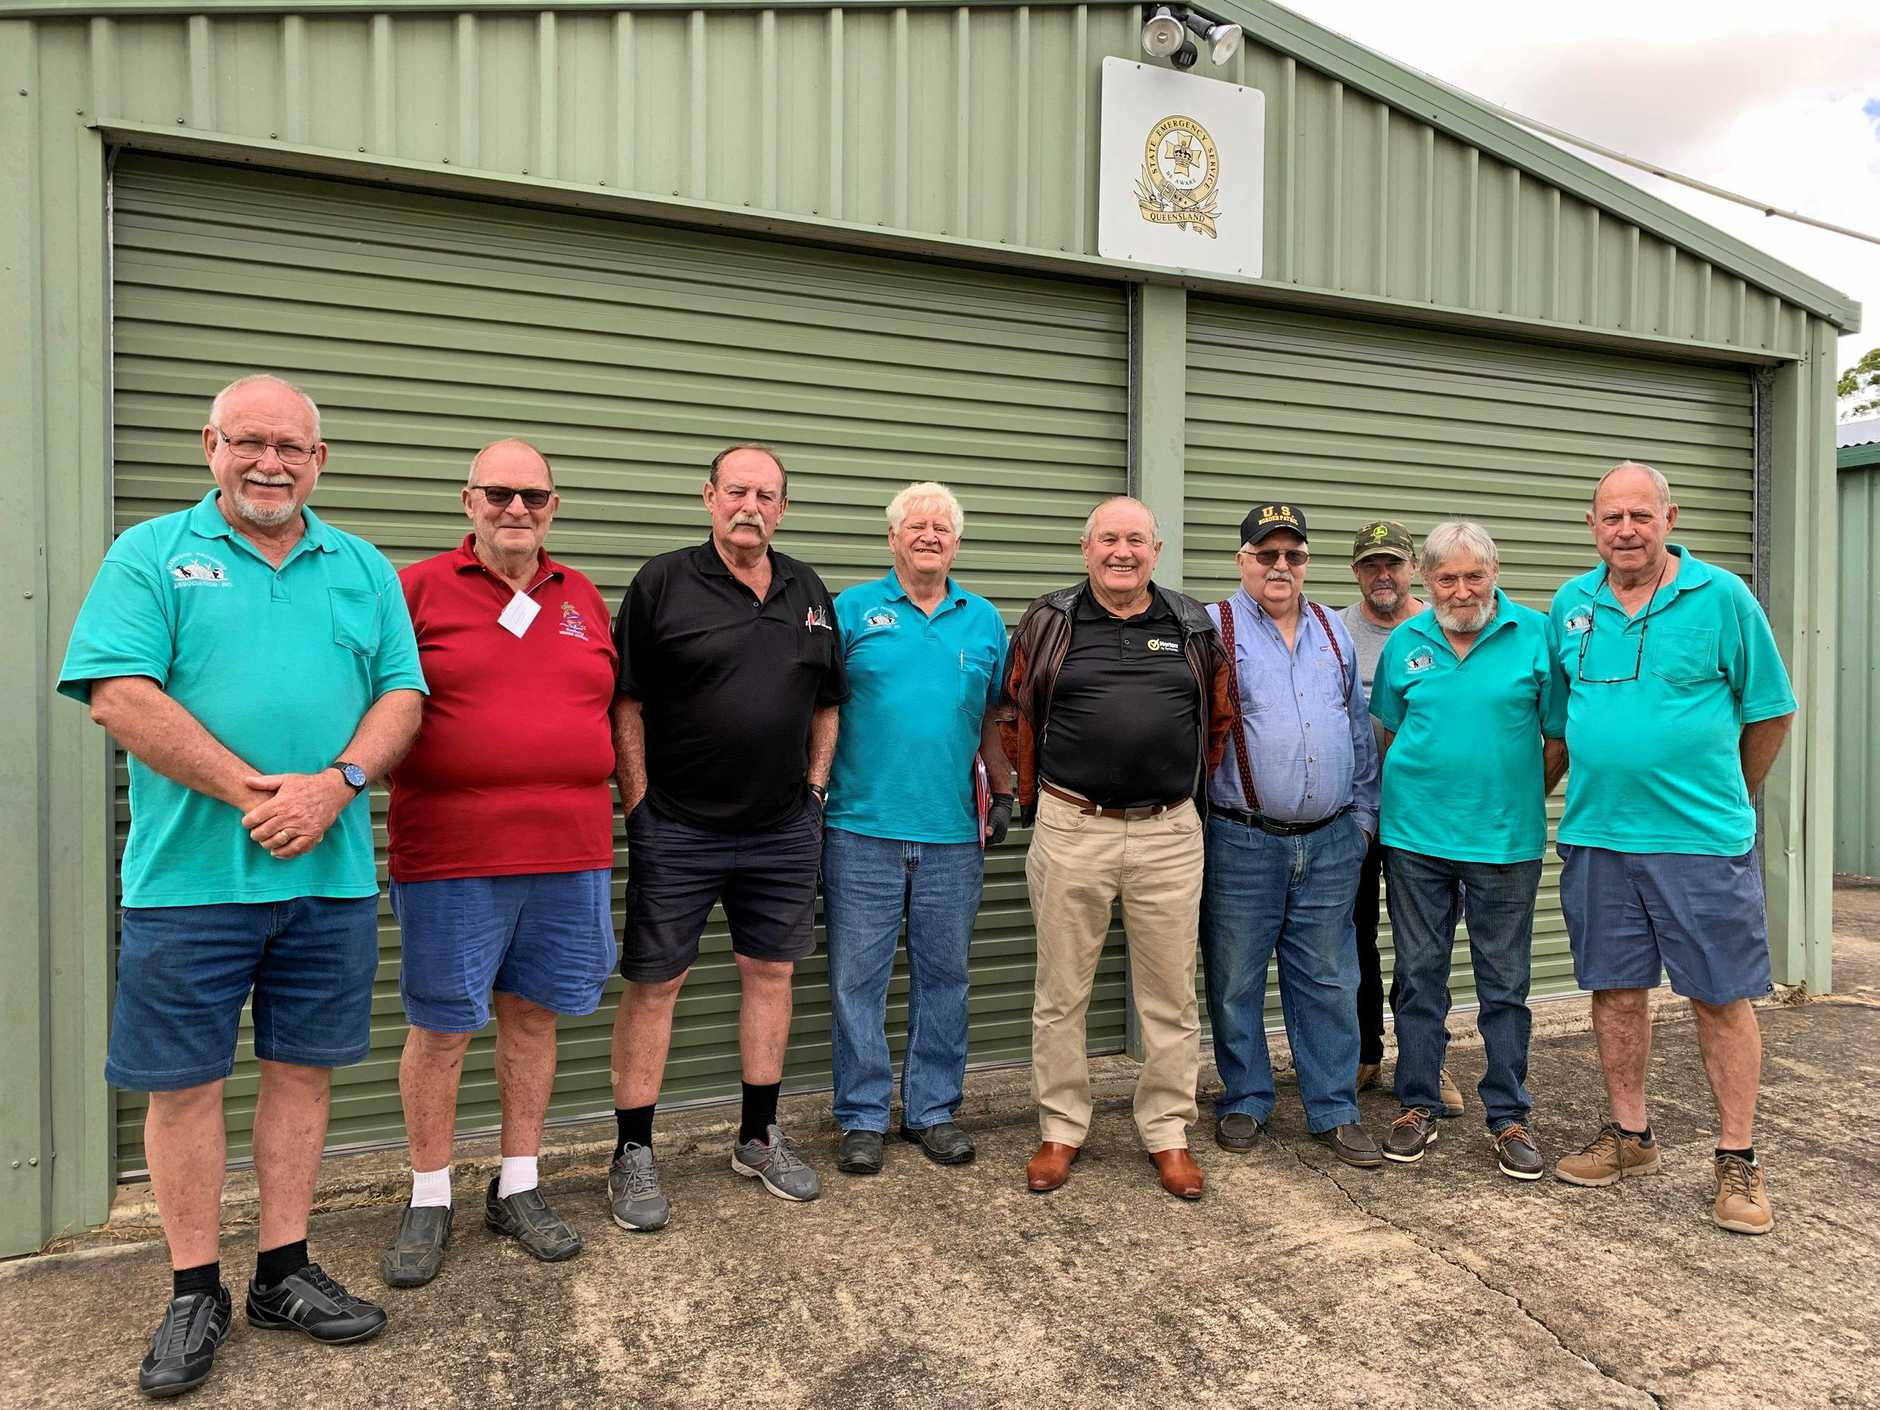 BUILDING SUPPORT: Glenwood Men's Shed chairman David Legge (second from left) says the group is making a big difference to lives in his community.